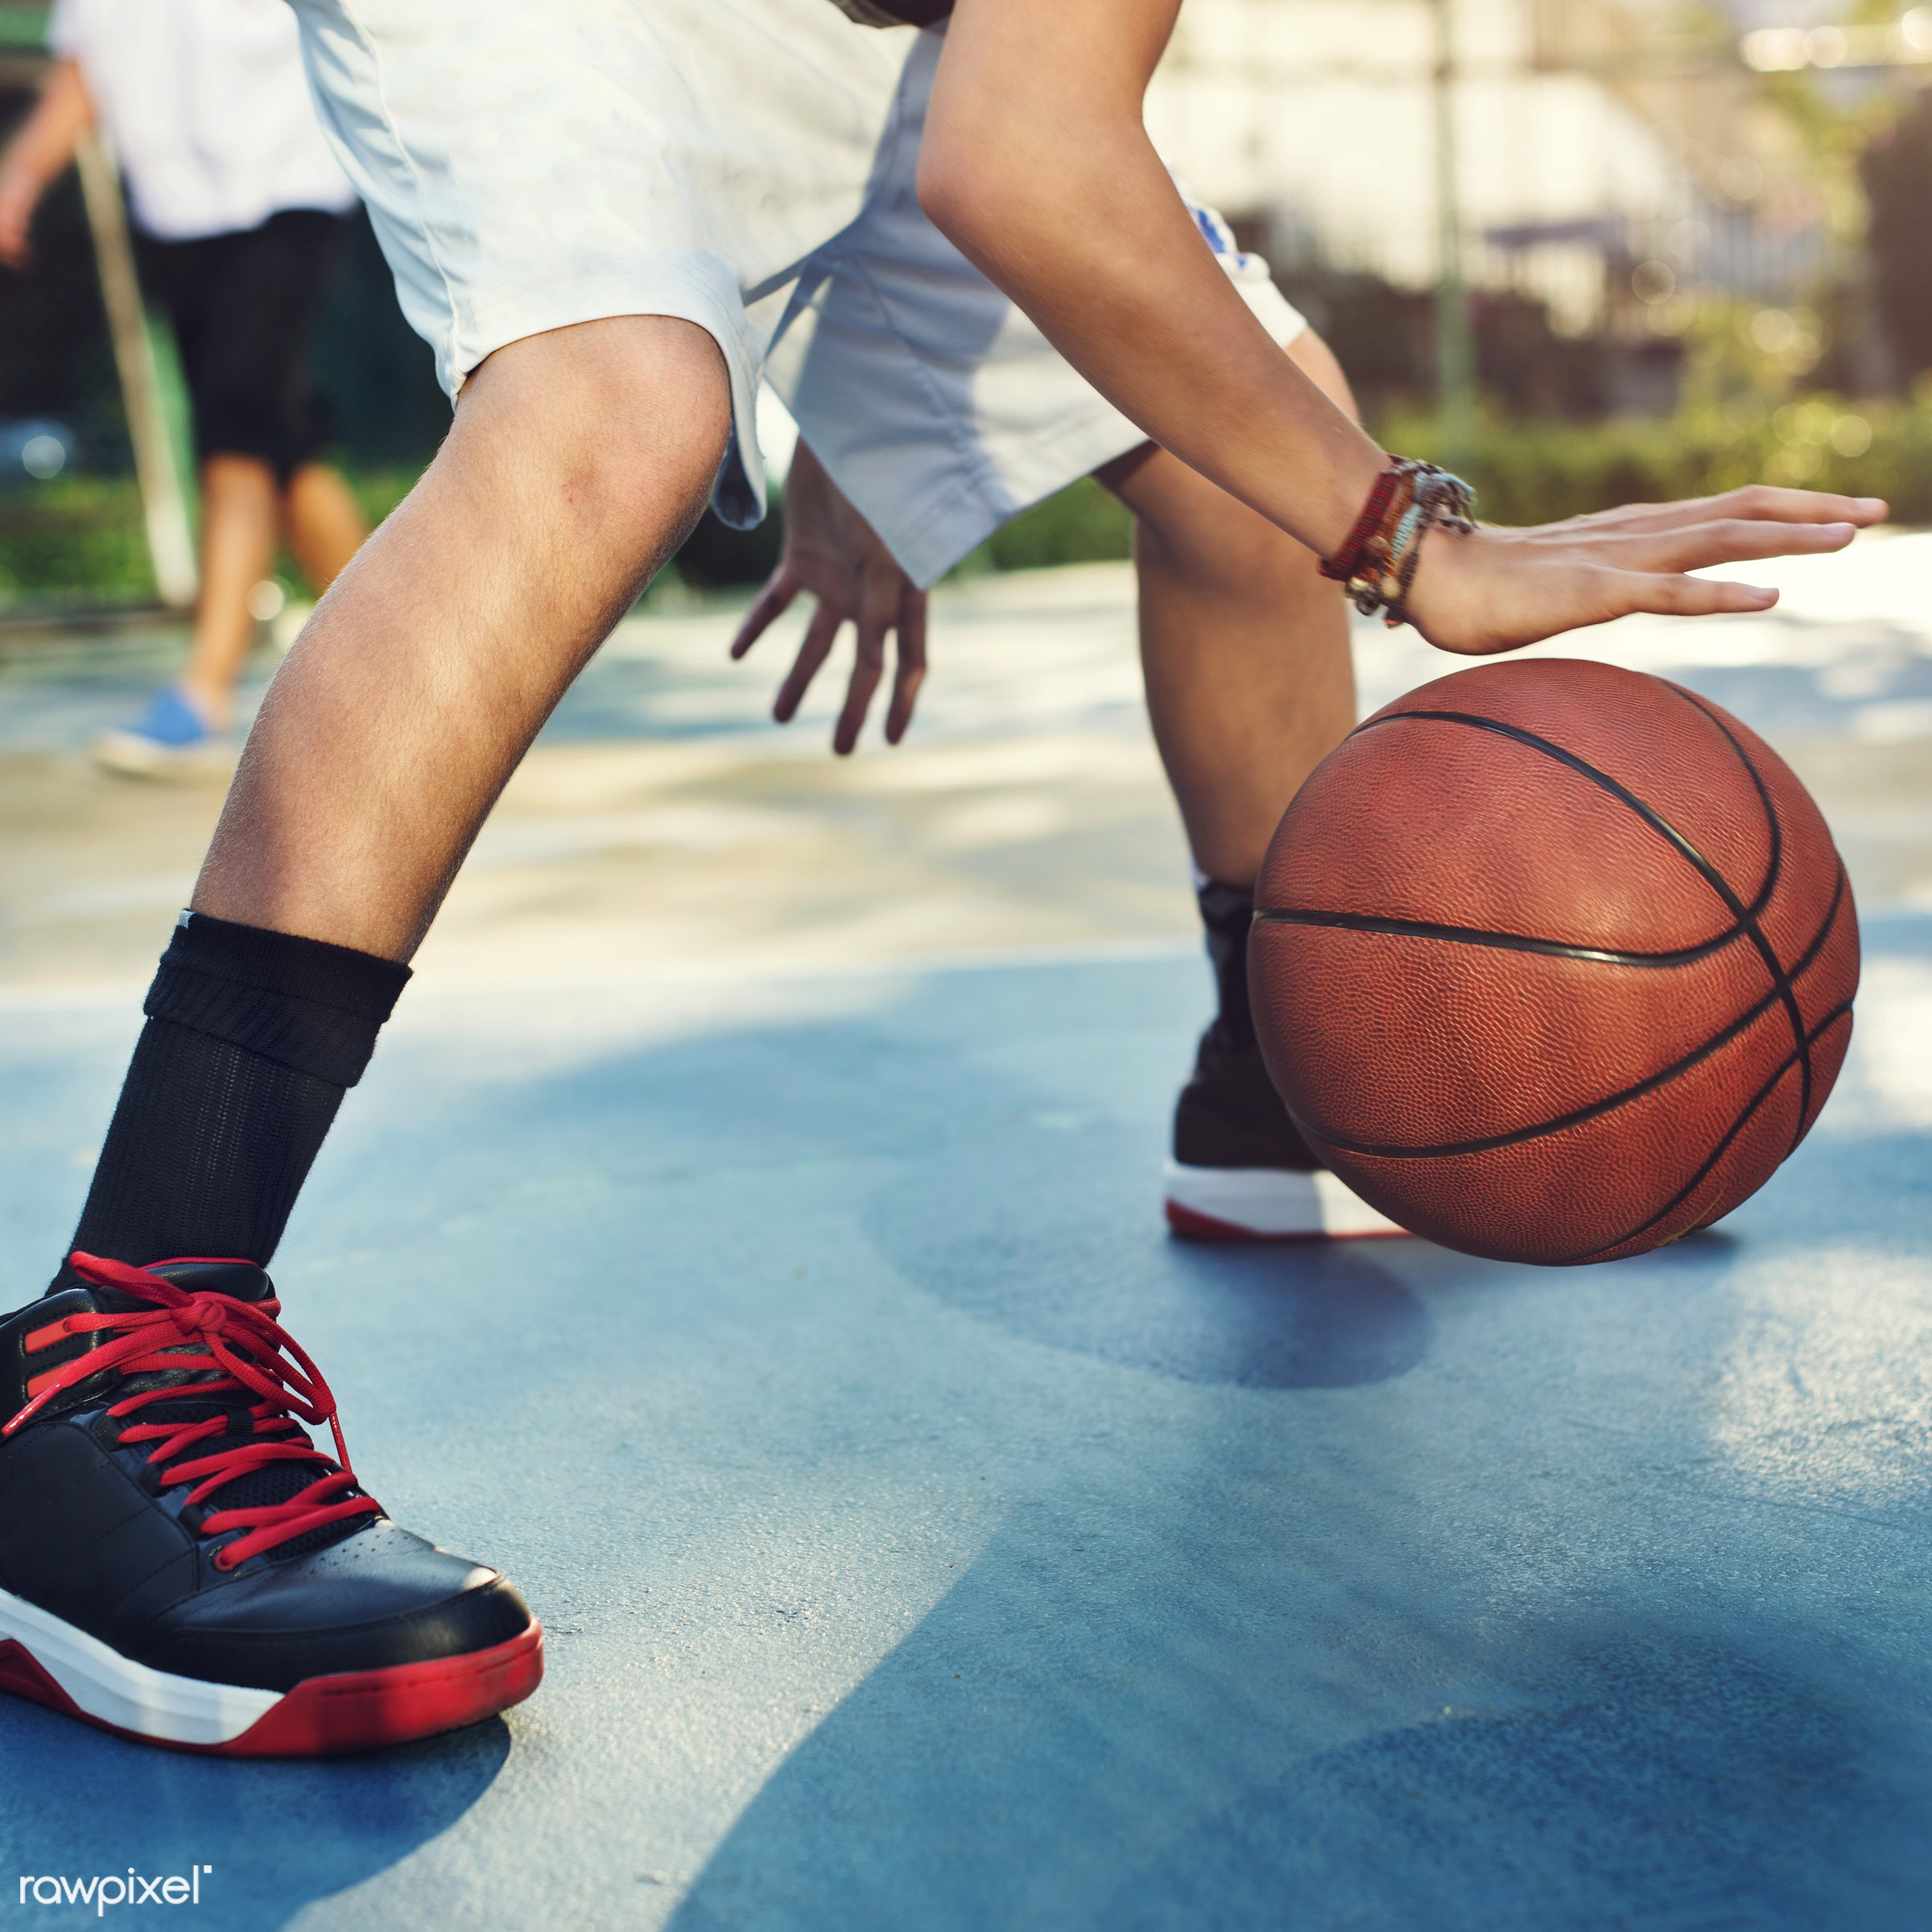 sport, basketball, teen, activity, ball, boy, exercise, game, man, play, player, practice, strength, young, youth